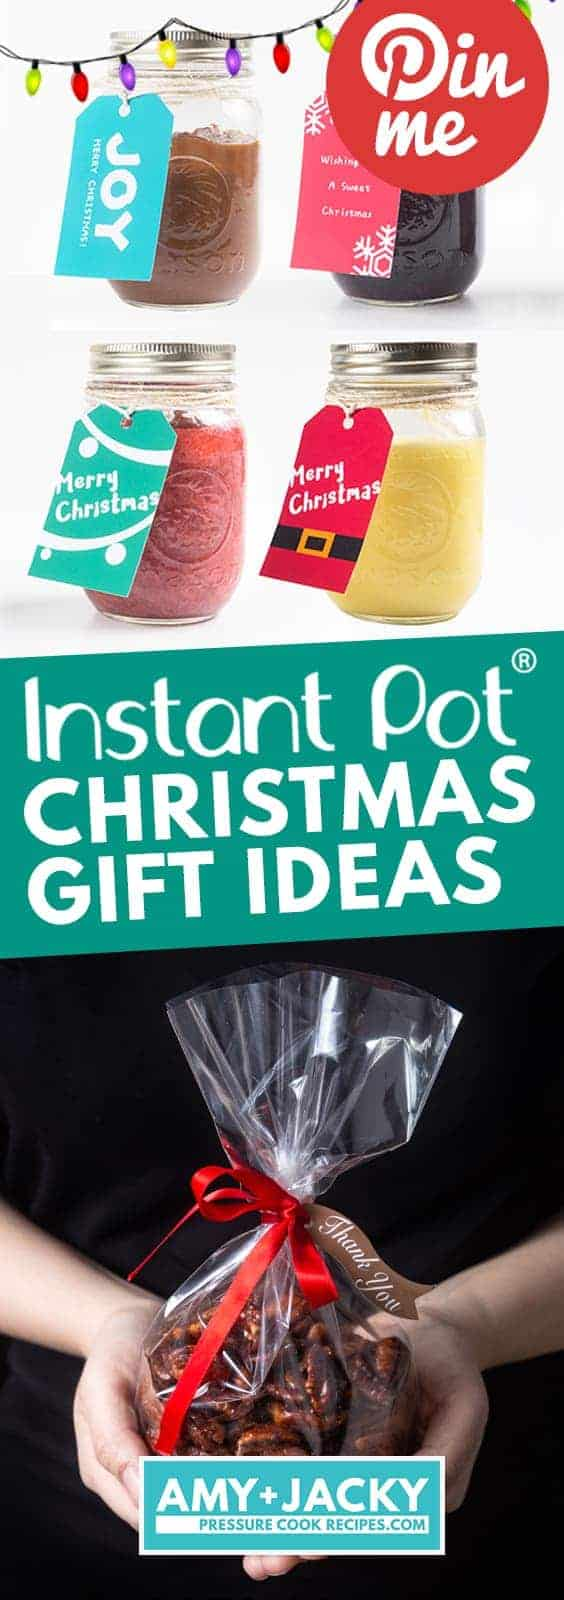 Instant Pot Homemade Food Gifts | Pressure Cooker Christmas Recipes | DIY Gifts | Holiday Food Gifts | DIY Christmas Gifts | Edible Gifts | Teacher's Gifts | Gift Exchange Ideas | Stocking Stuffers #instantpot #pressurecooker #diy #food #recipes #christmas #holiday #gifts